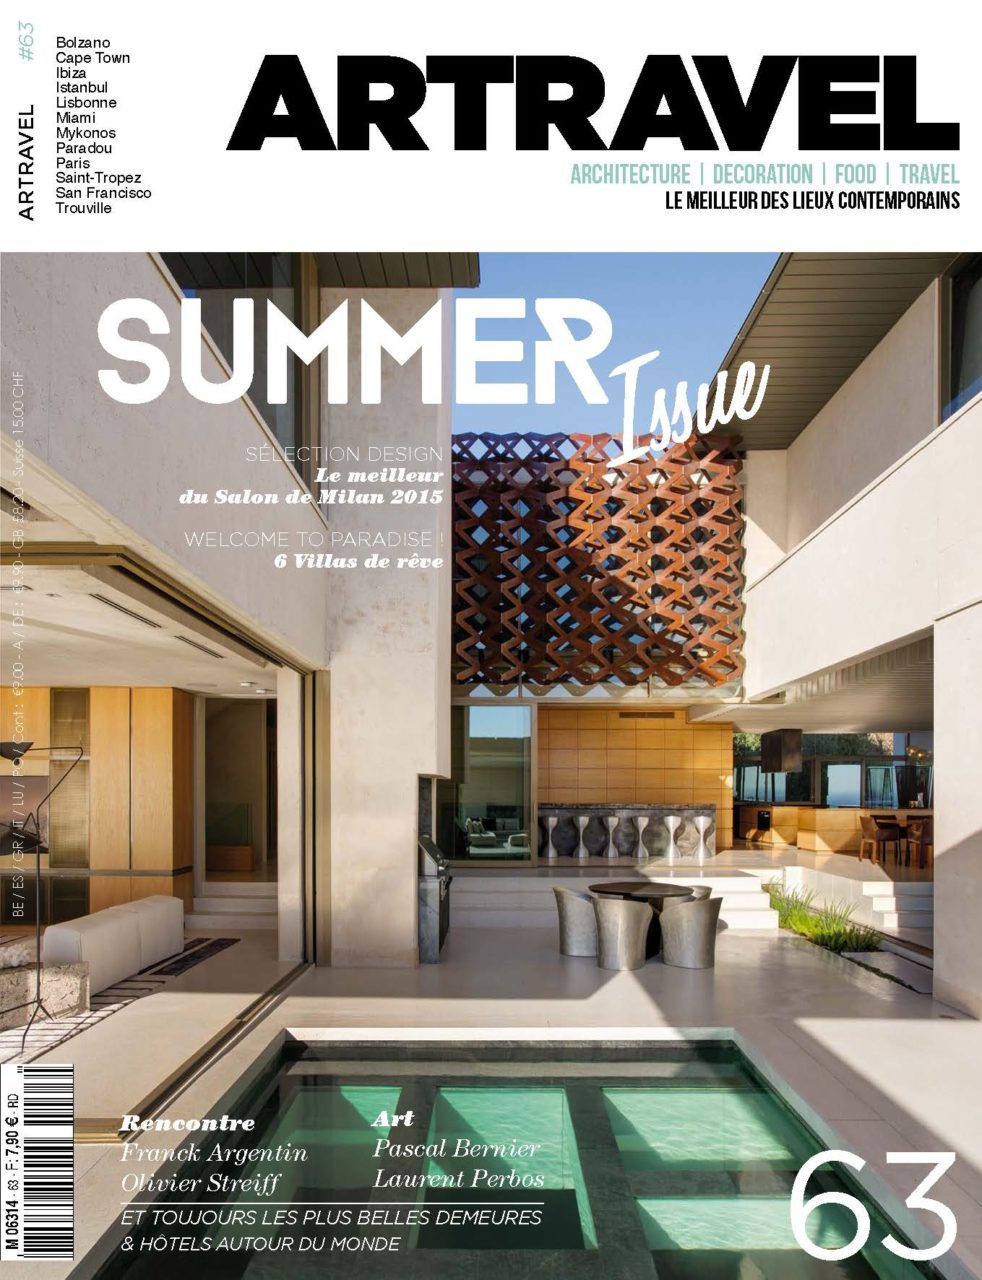 Php architect Magazine - The Journal for PHP Programmers